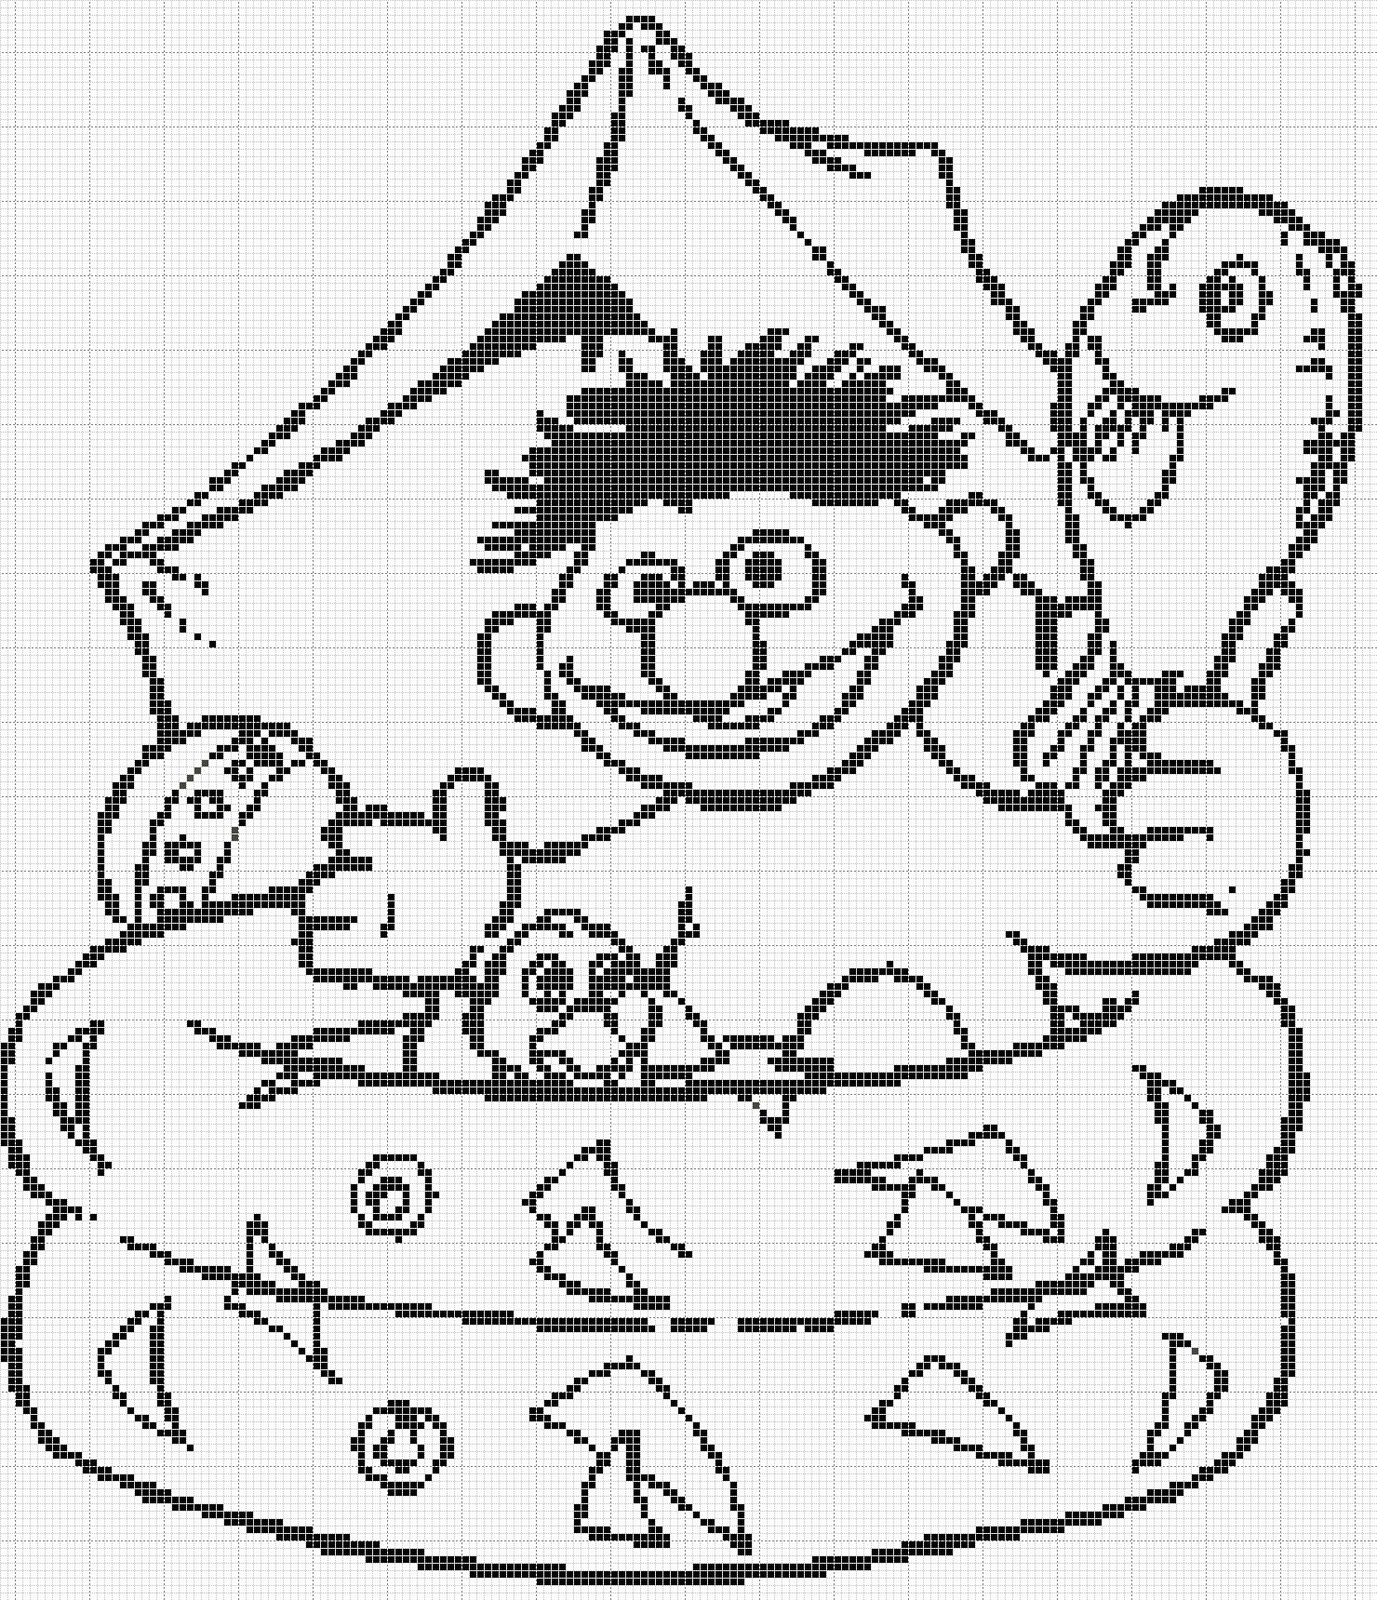 mowglie coloring pages to print - photo#26